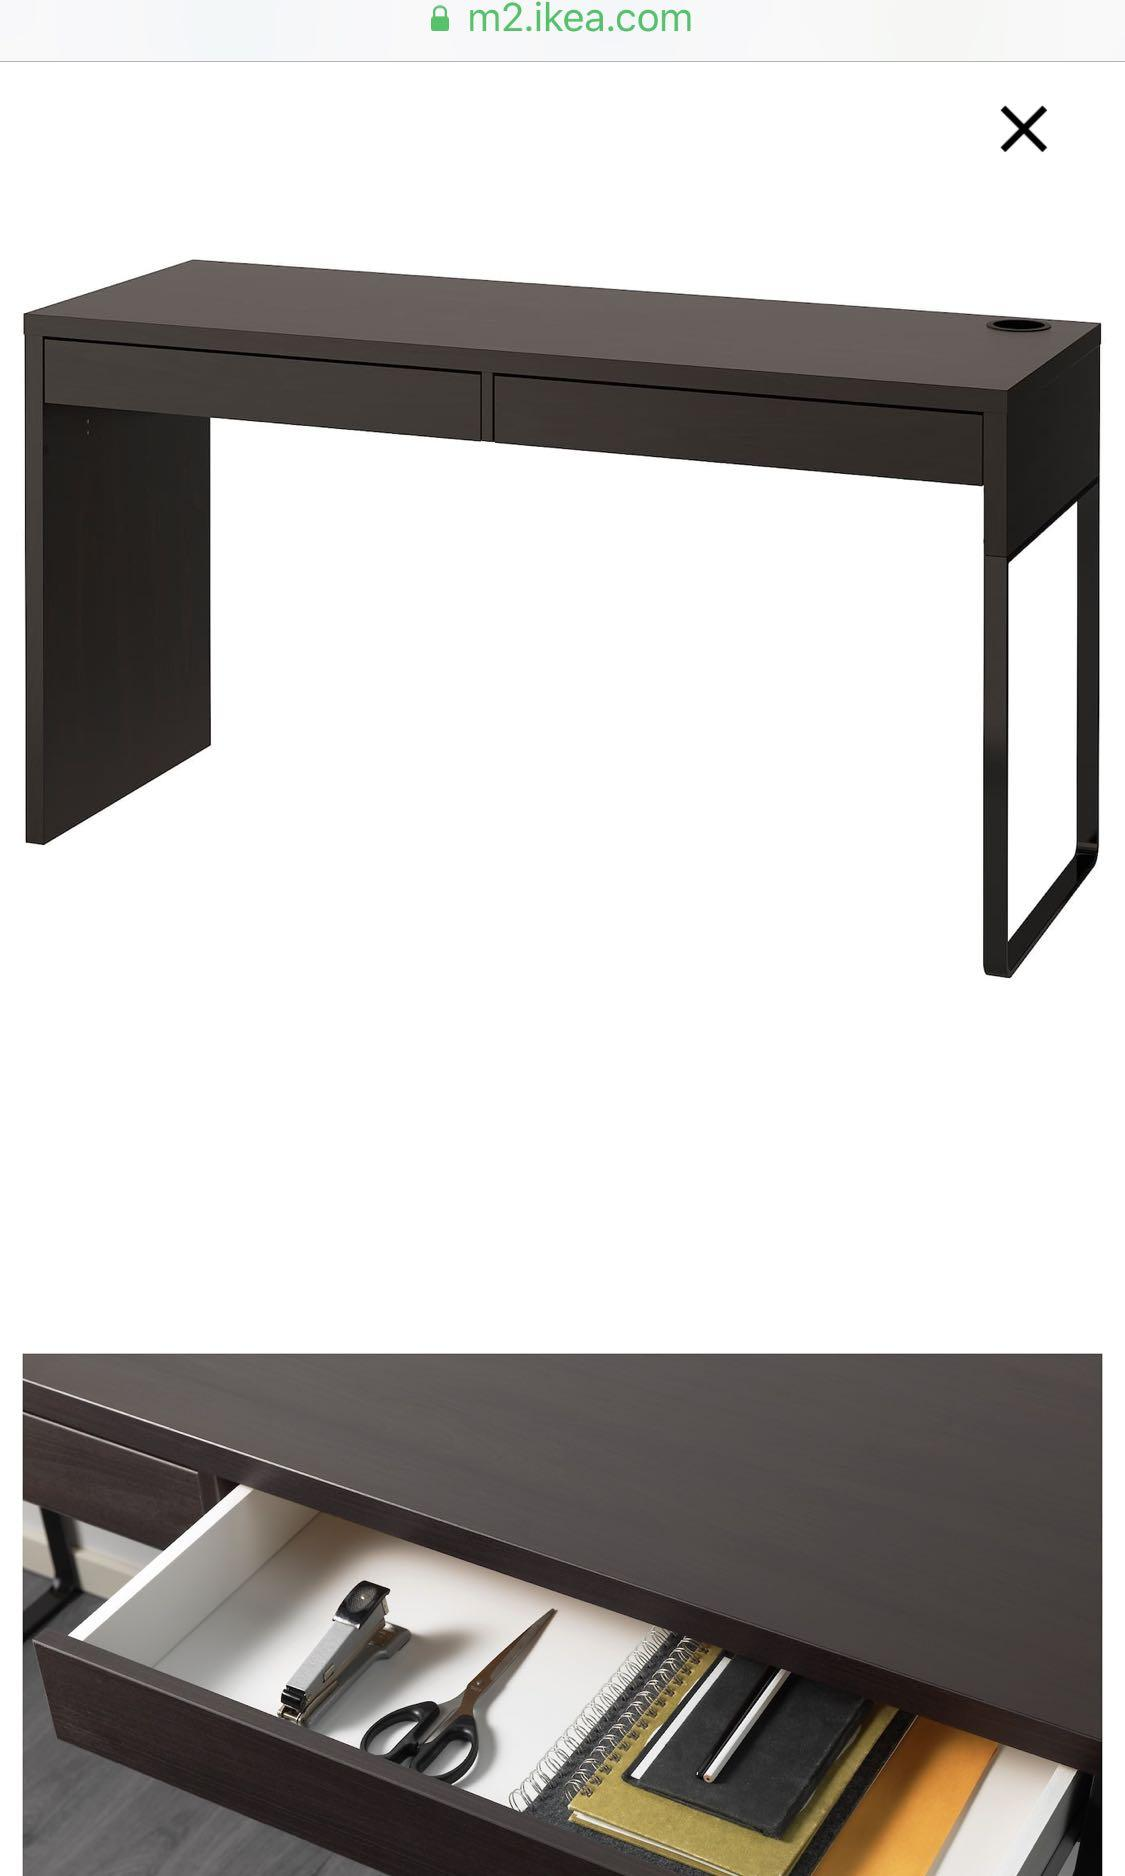 Selling like new ikea desk! WITH custom glass piece on top to avoid mess. Custom made.